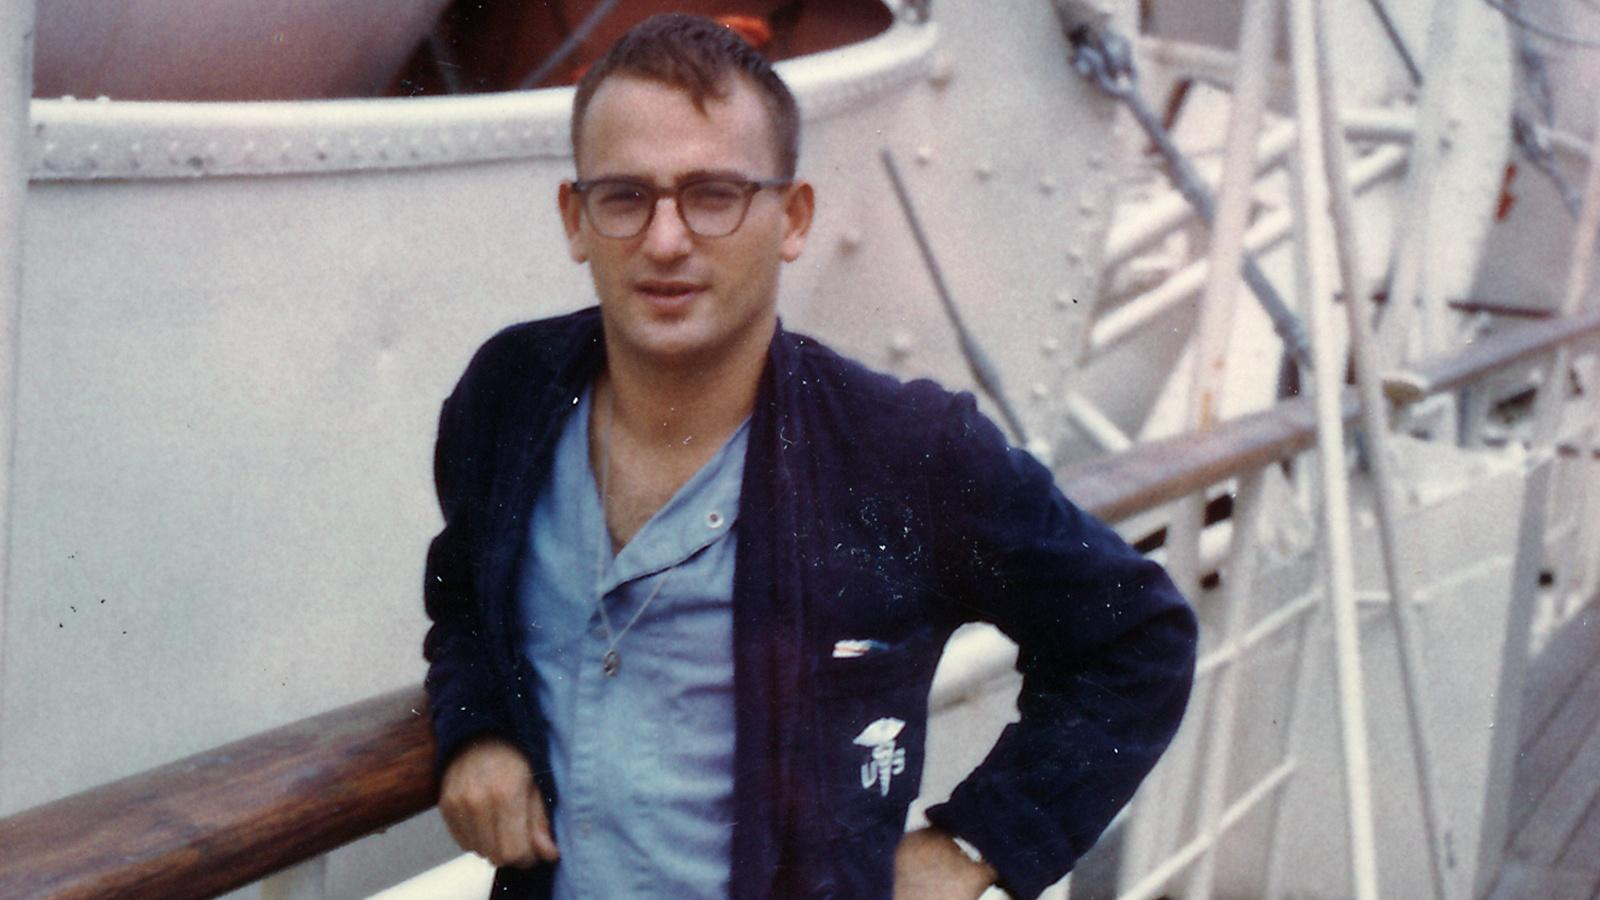 Dominic was wounded several times while serving in Vietnam.  This picture was captured on board a hospital ship as he healed from his wounds.